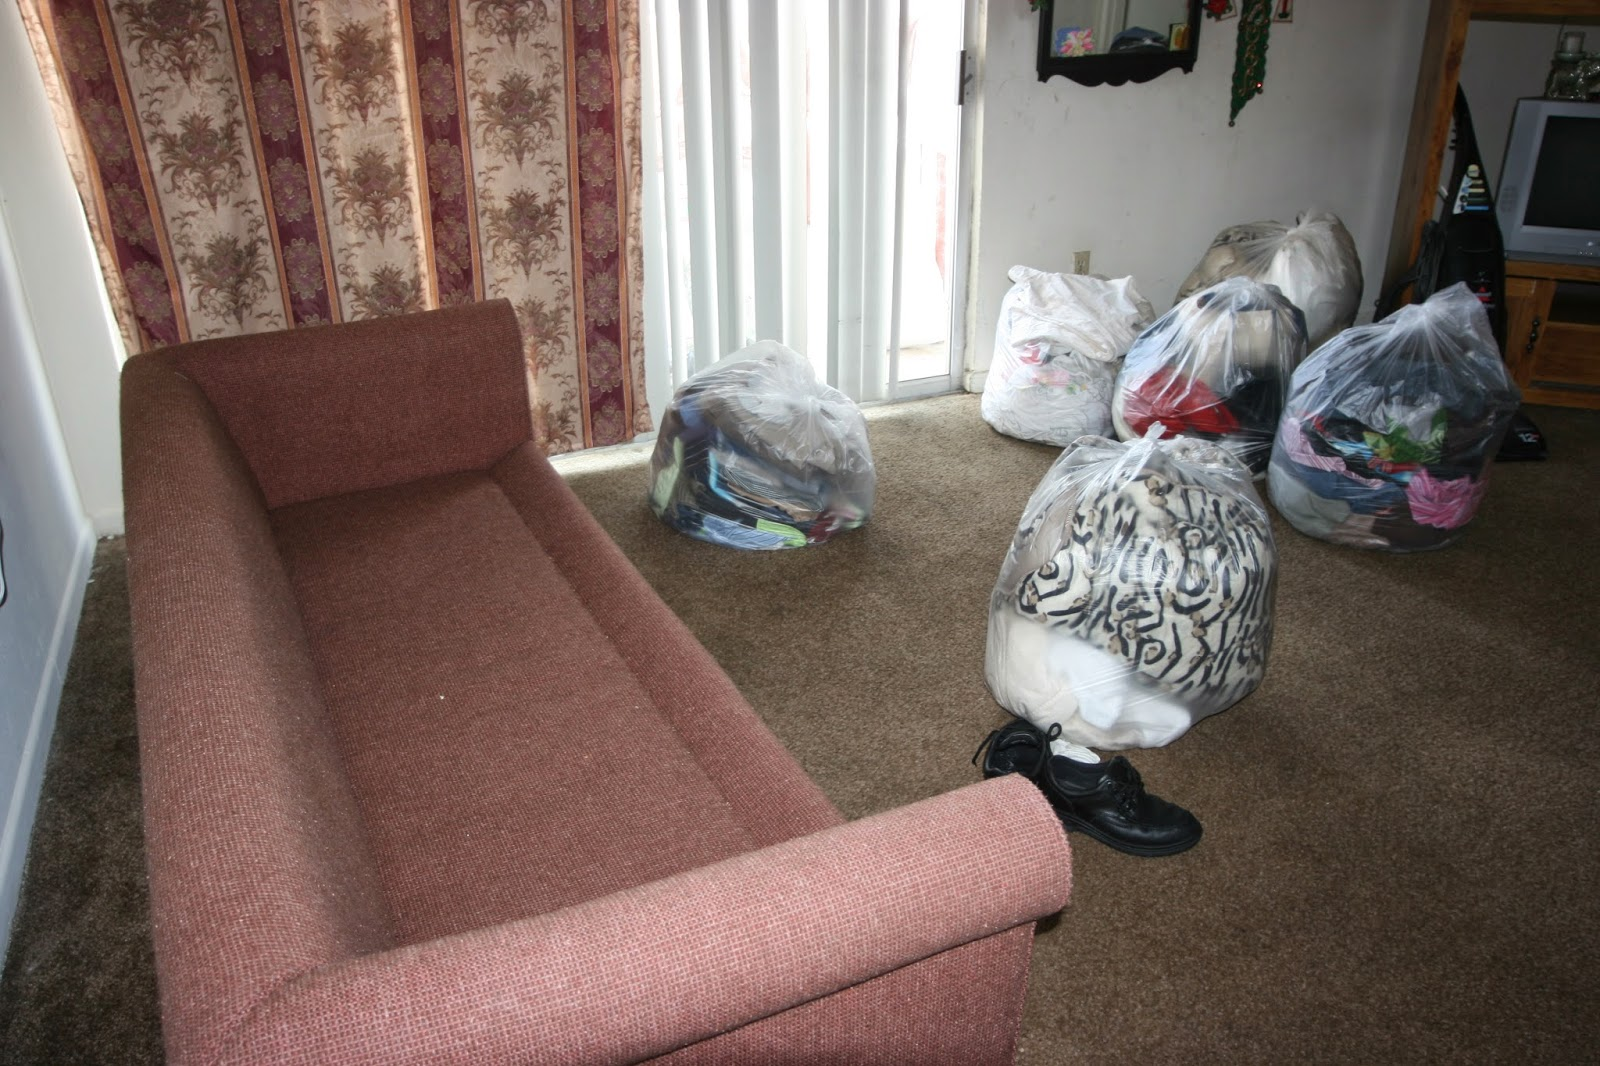 Bagged Items Following An Insecticide Treatment For Bed Bugs.